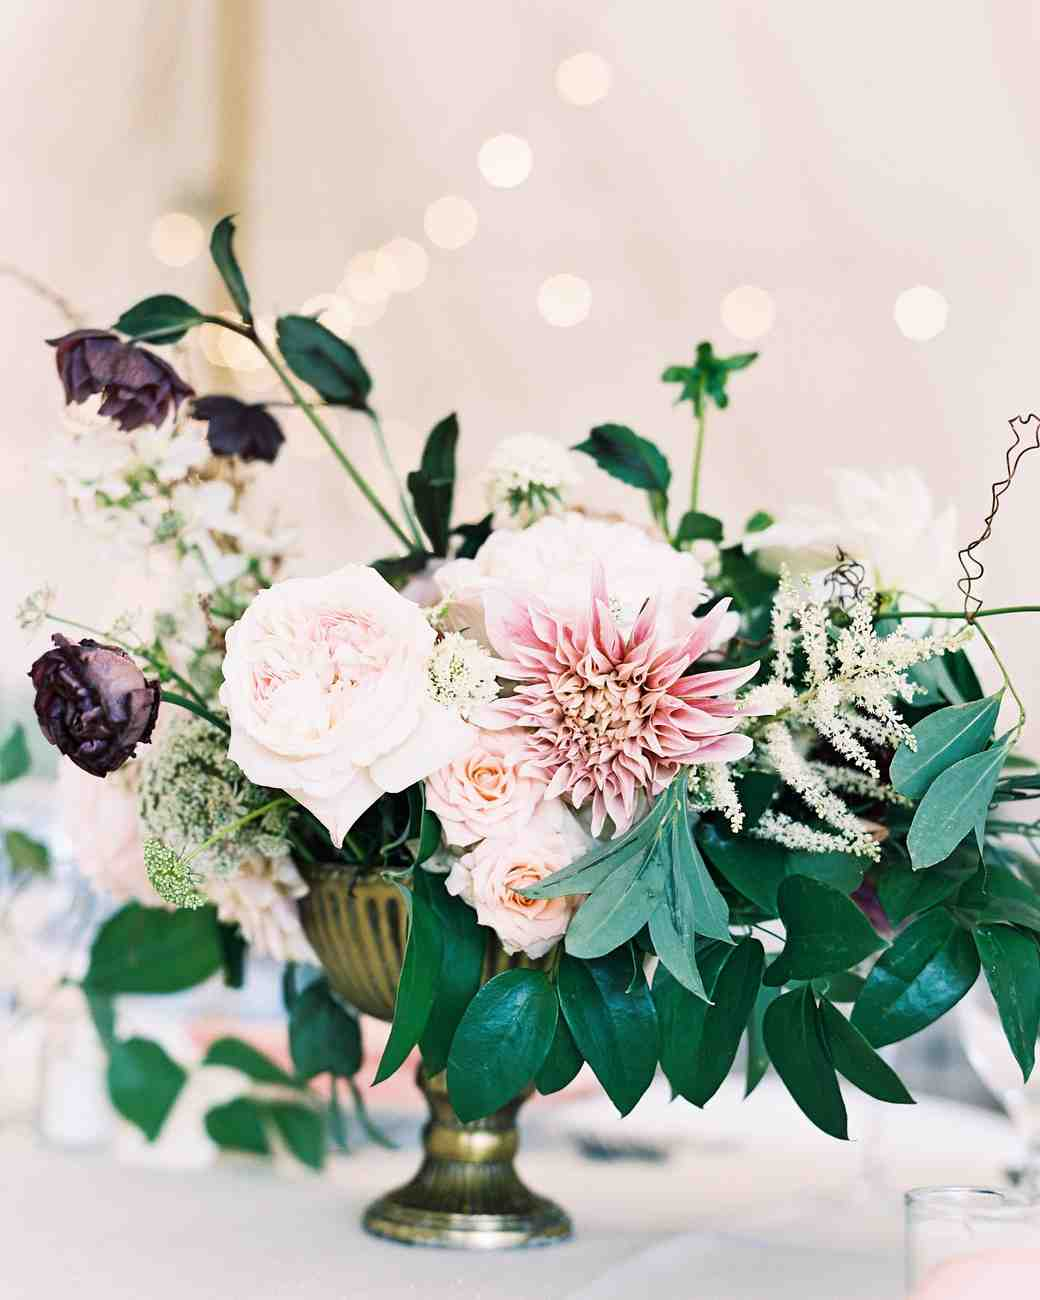 Summer Wedding Centerpiece Ideas: Stunning Summer Centerpieces Using In-Season Flowers